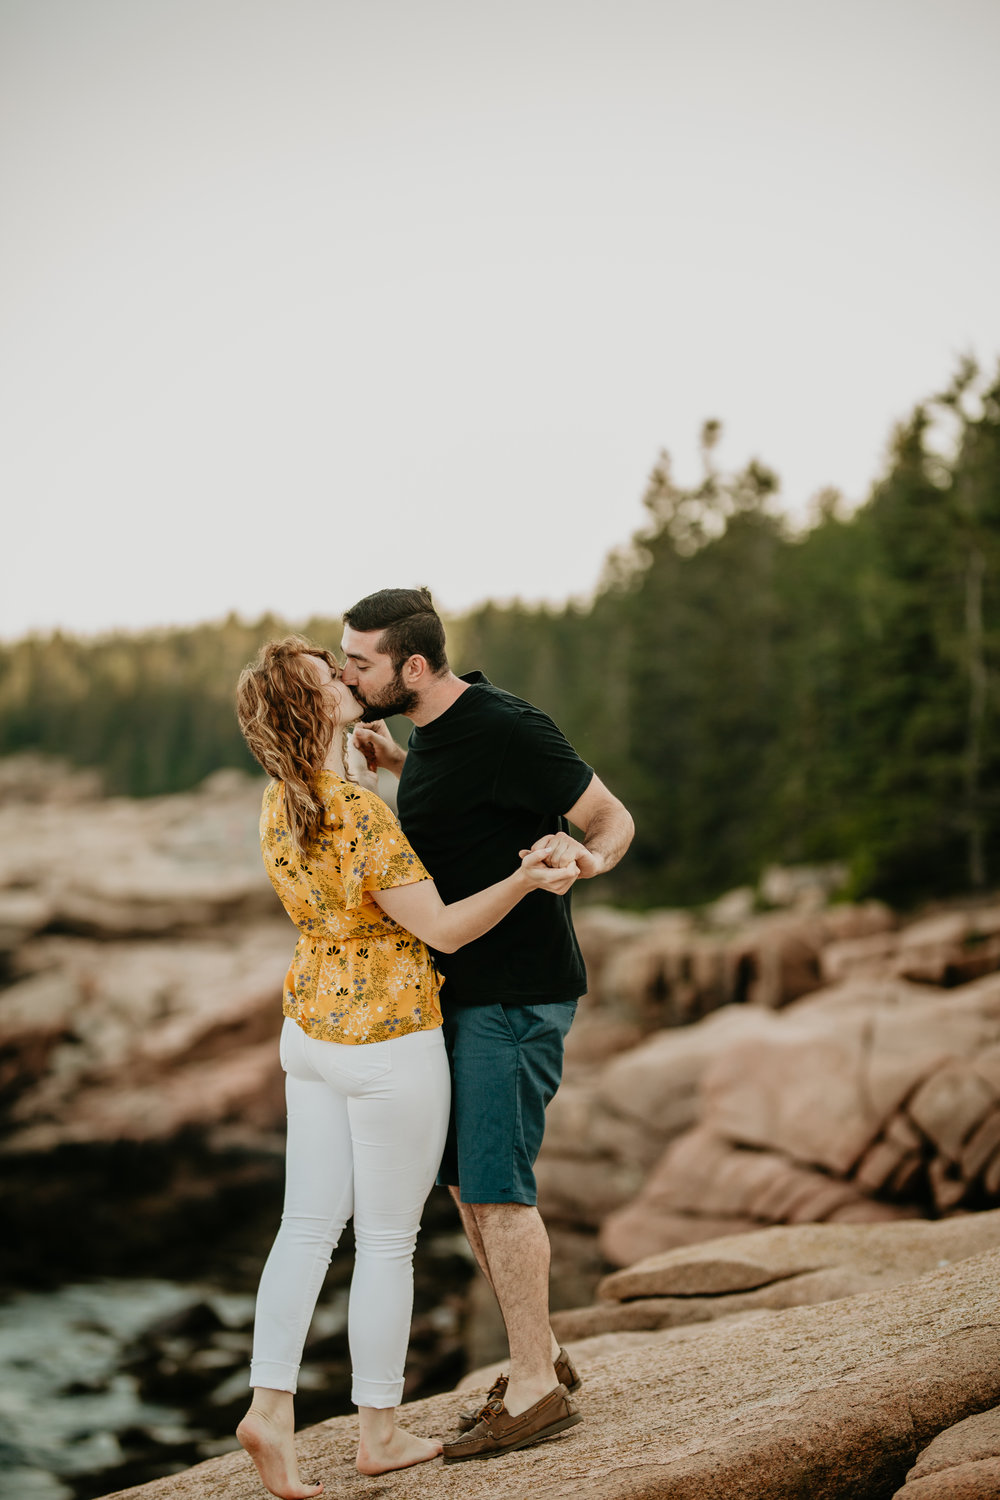 nicole-daacke-photography-acadia-national-park-engagement-photos-session-little-hunters-beach-sunset-cadillac-mountain-thunder-hole-otter-cliffs-couples-session-acadia-elopement-photographer-pine-trees-ocean-maine-19.jpg